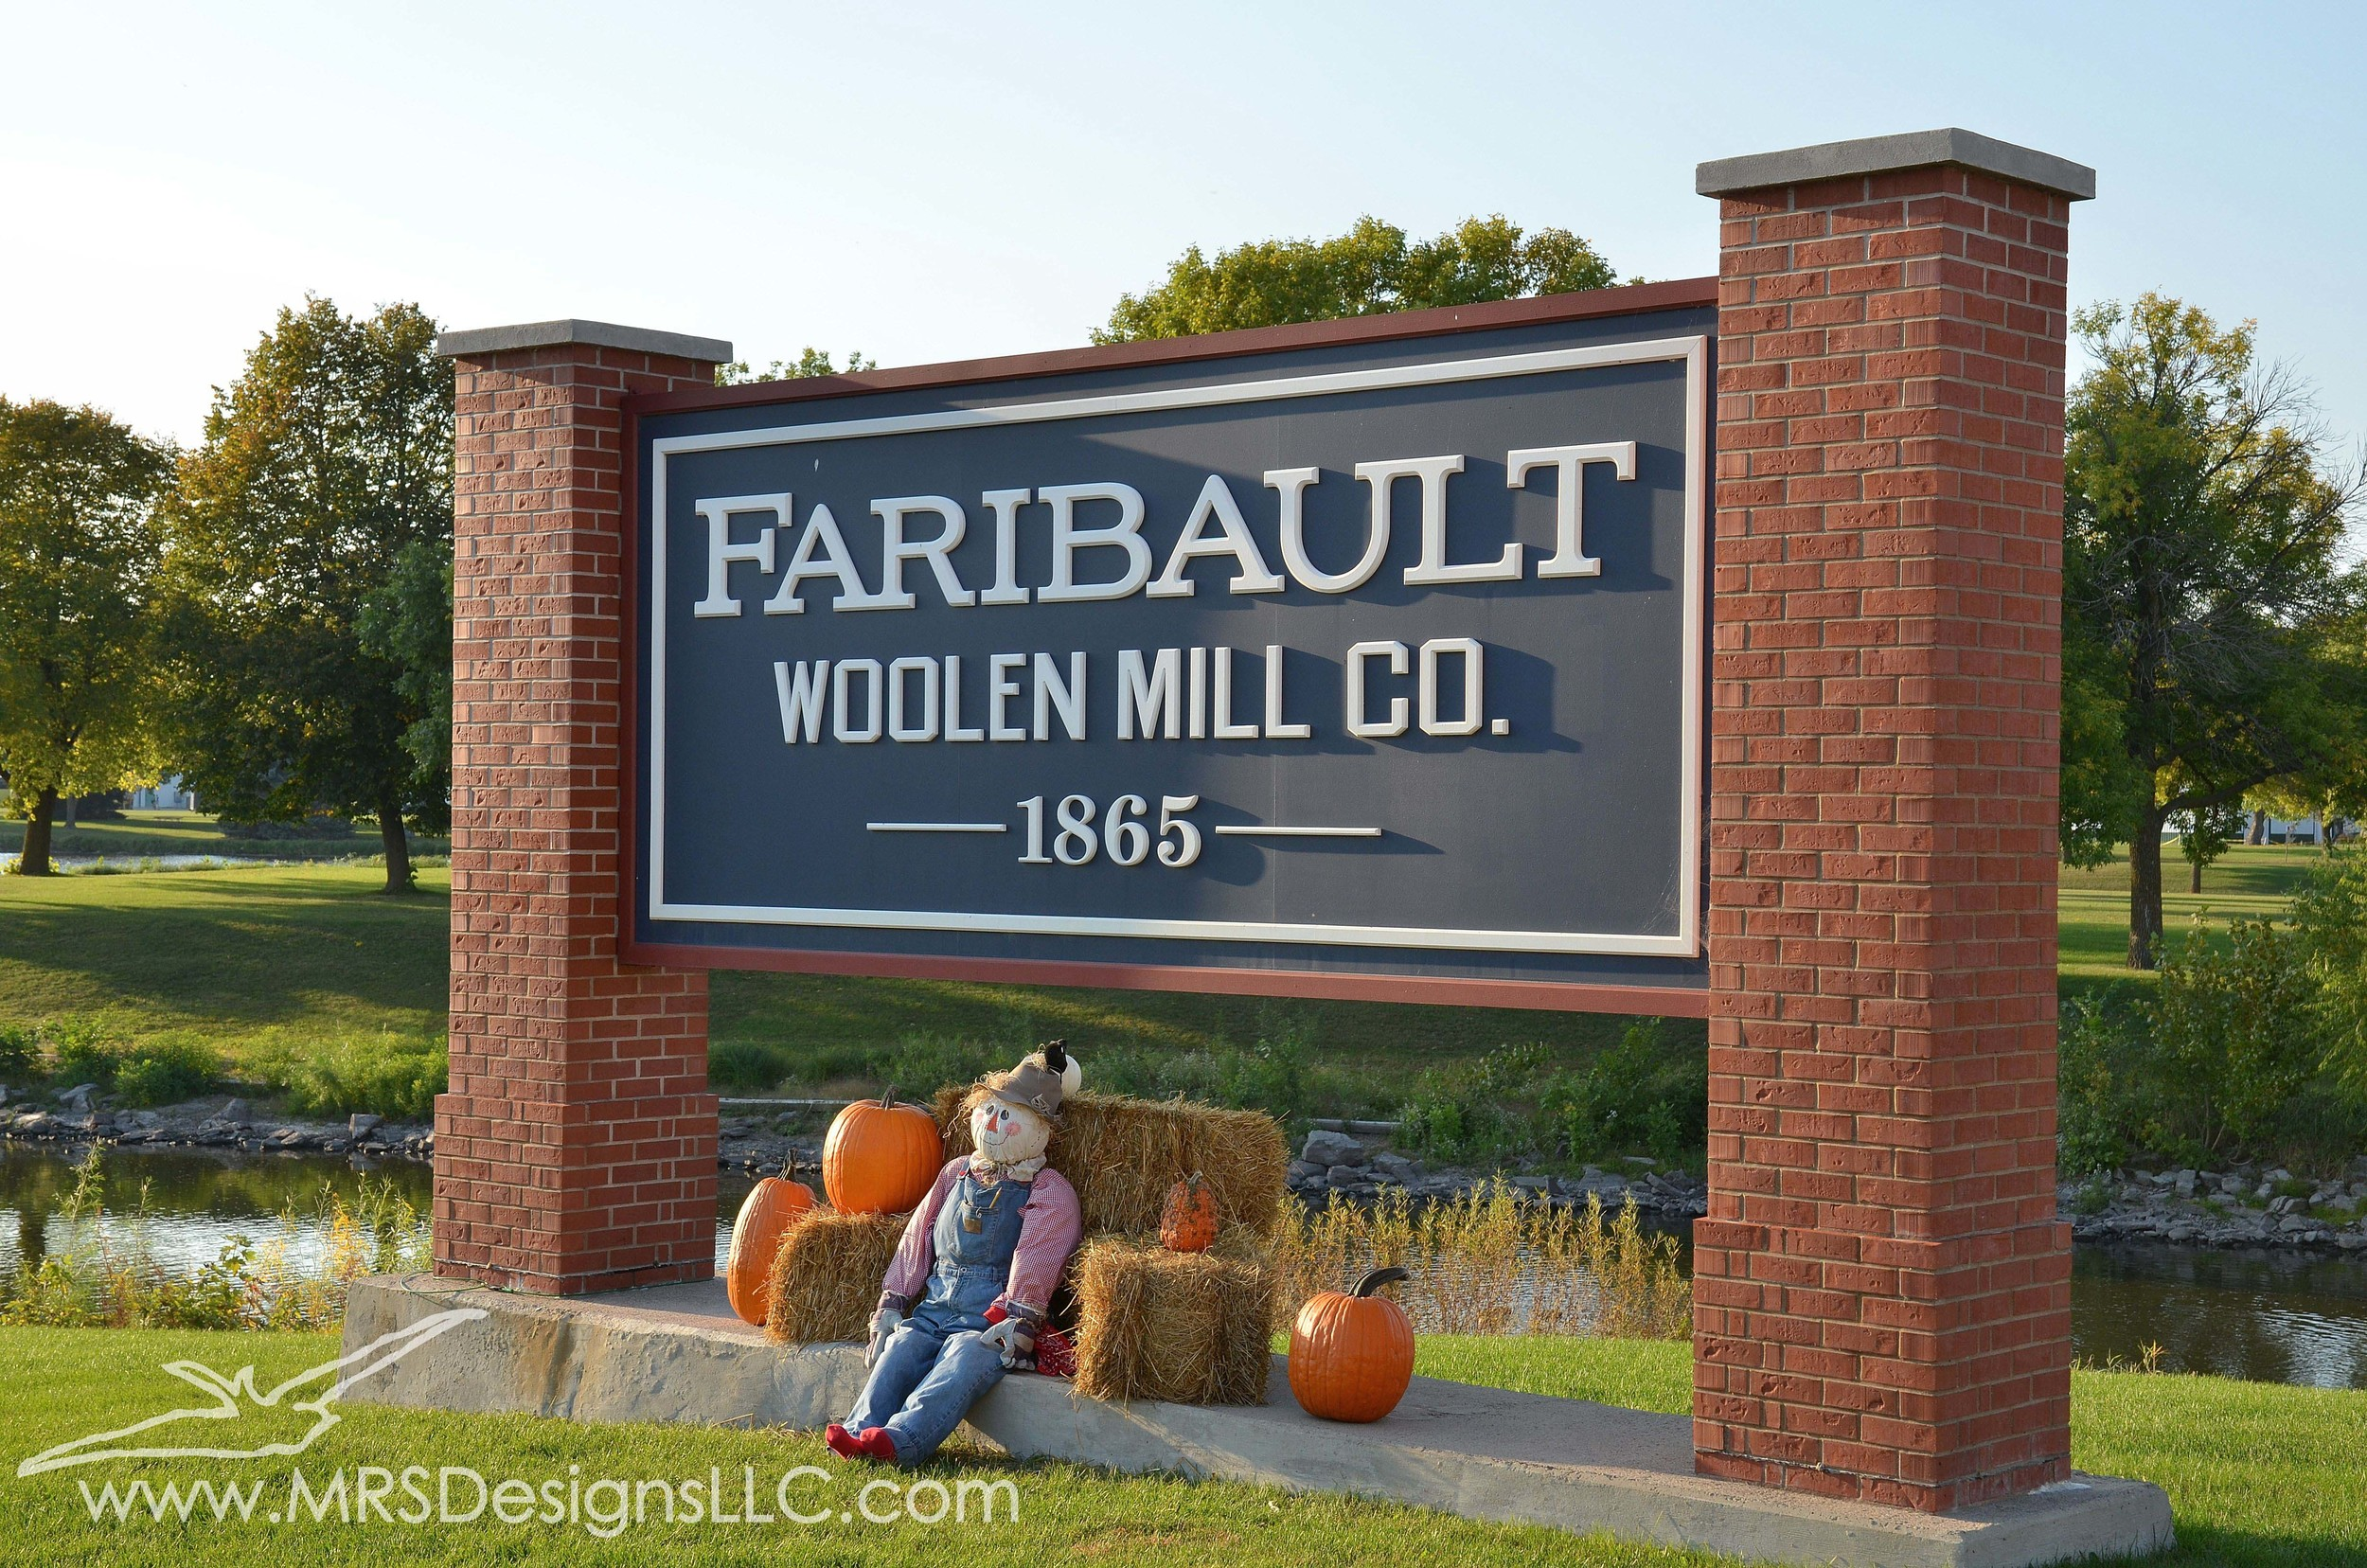 MRS Designs Blog - Annual Mill Tent Sale at the Faribault Woolen Mill